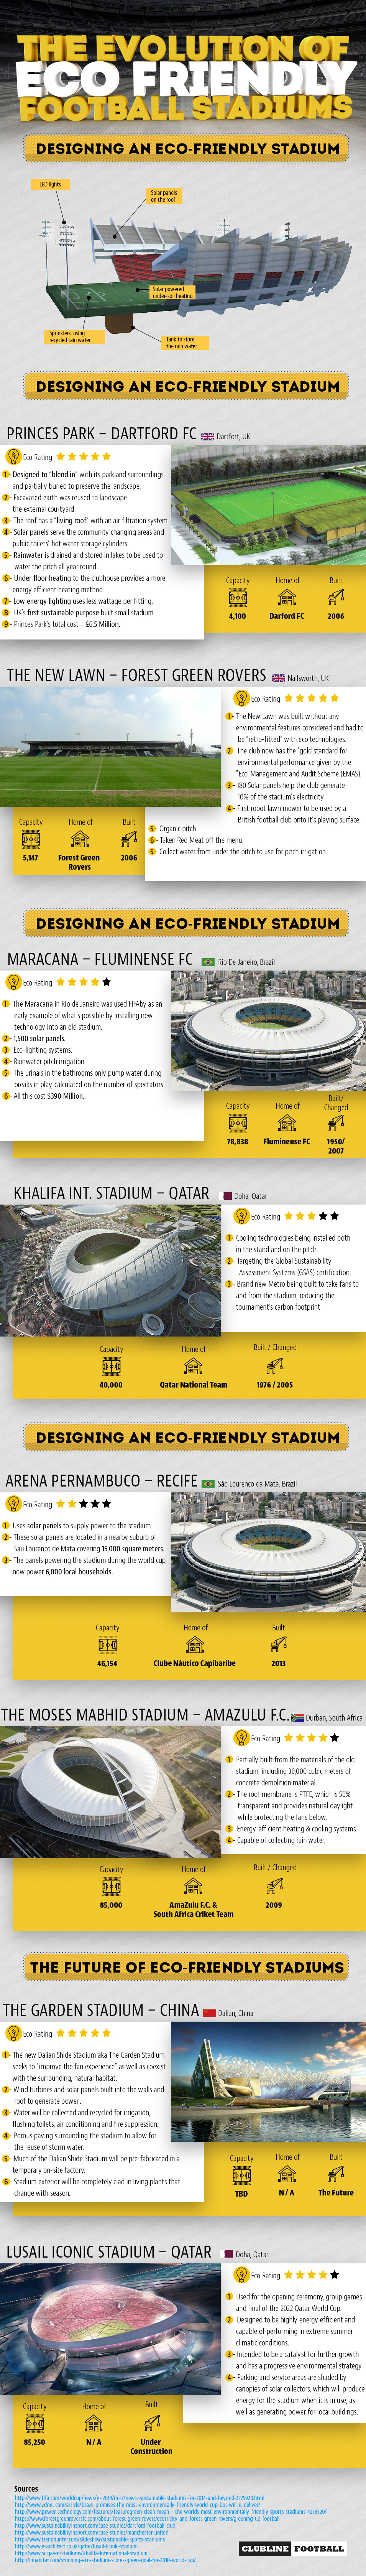 Football Stadiums Of The Future